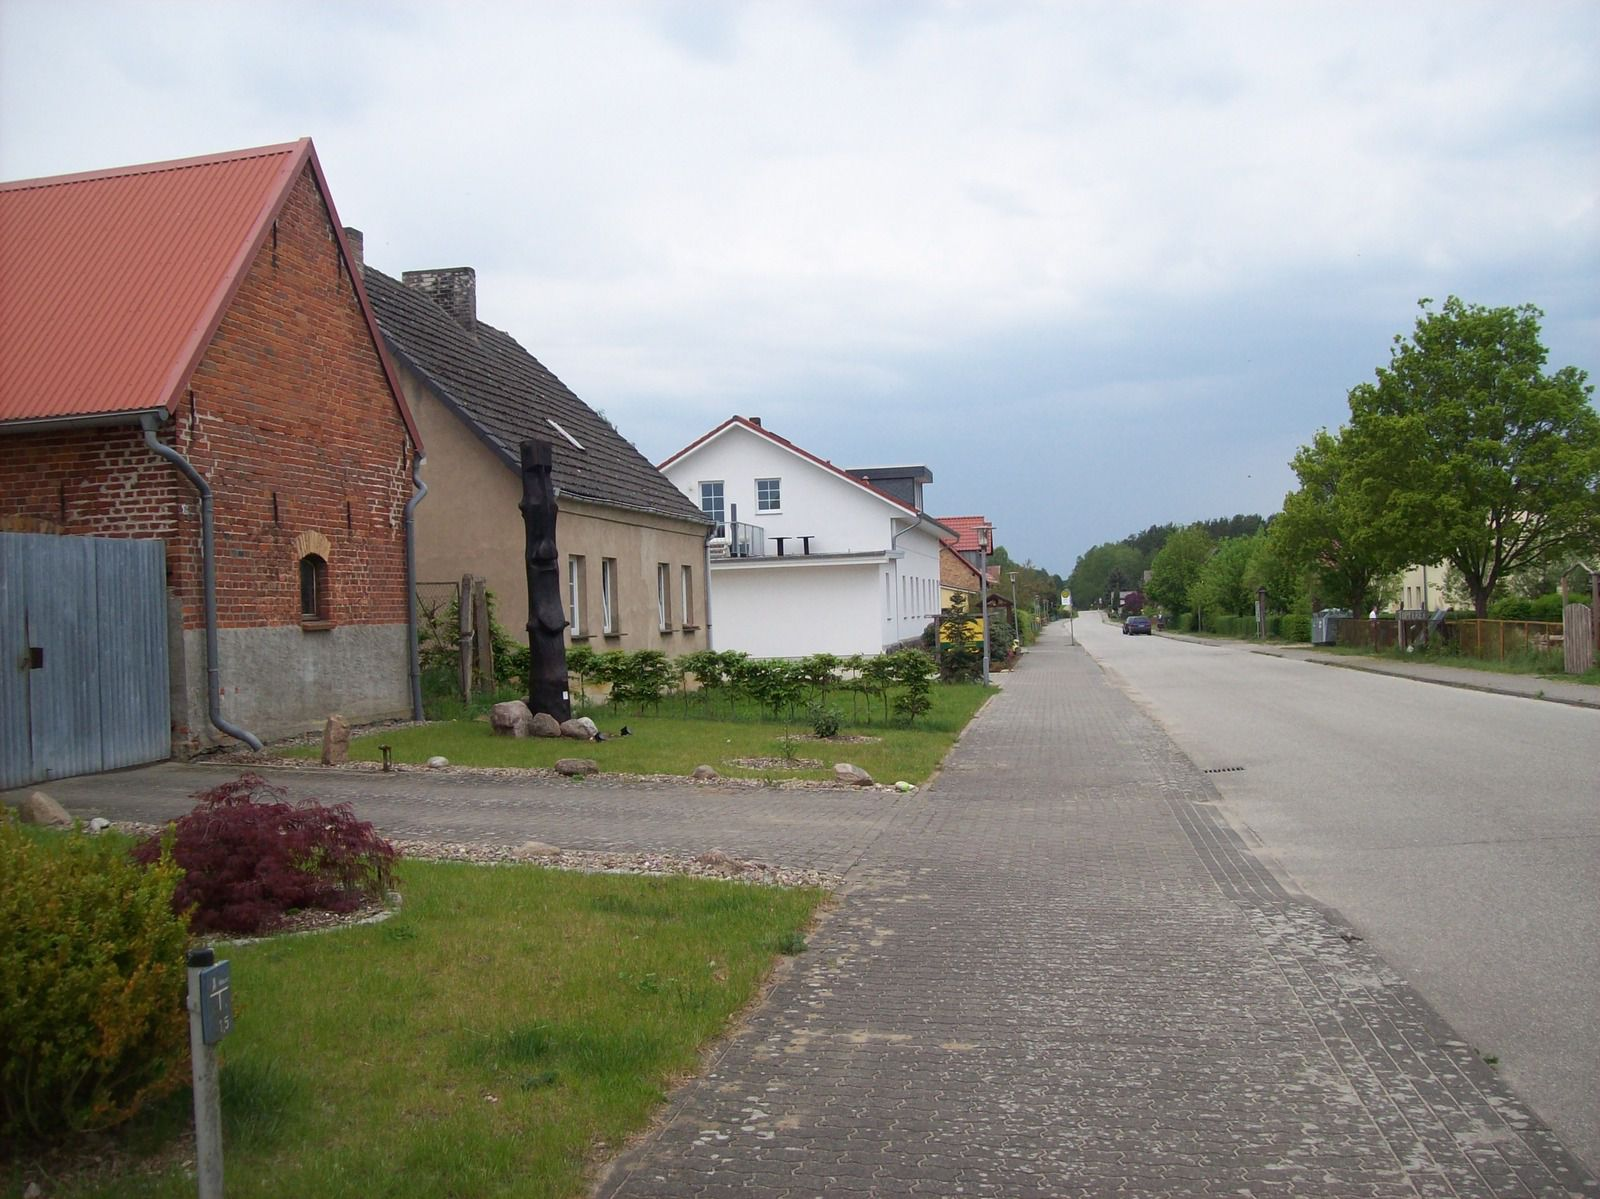 Retzower Dorfstraße mit Moai links.